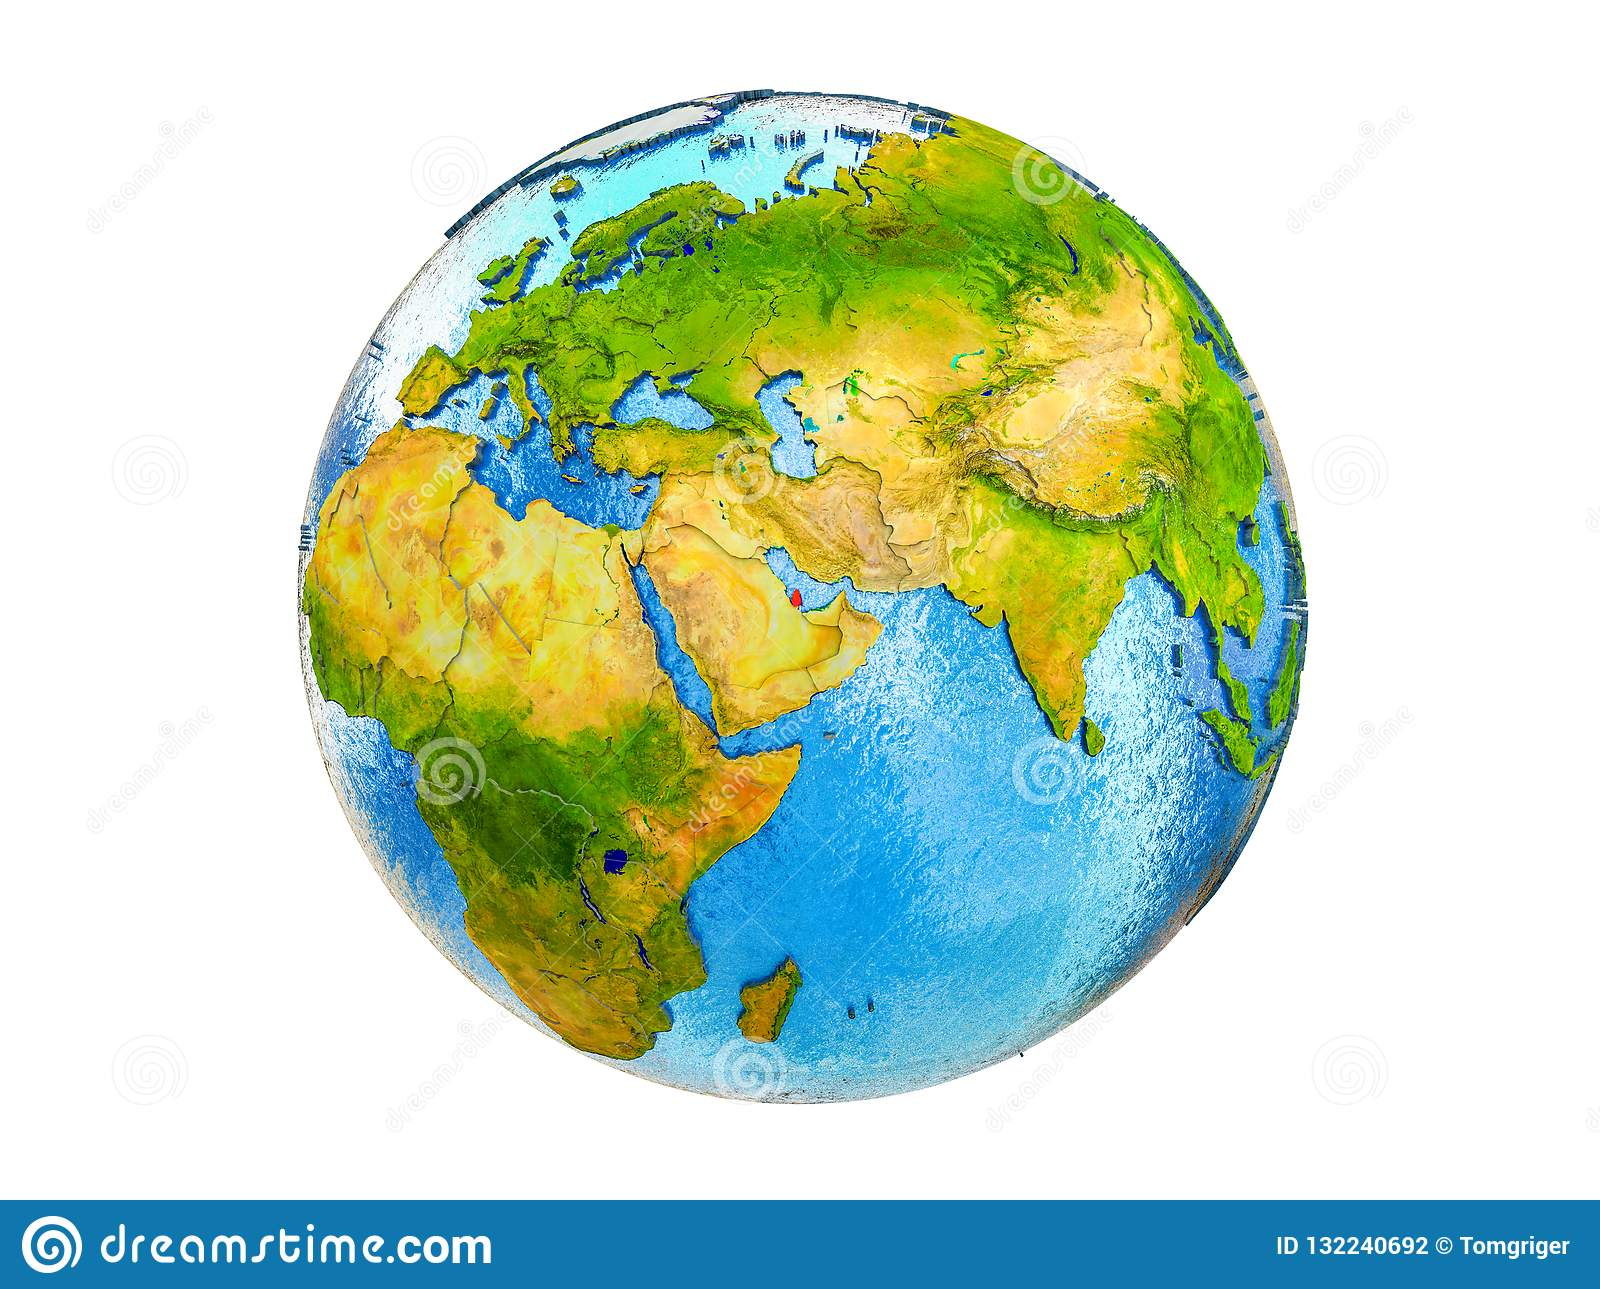 Map Of Qatar On 3D Earth Isolated Stock Photo - Image of ... Qatar Country World Map on bahrain country maps, san marino country maps, pakistan country maps, luxembourg country maps, georgia country maps, asia country maps, curaçao country maps, japan country maps, turkey country maps, tunisia country maps, mexico country maps, europe country maps, france country maps, south sudan country maps, printable country maps, netherlands country maps, gibraltar country maps, somalia country maps, guyana country maps, united states country maps,